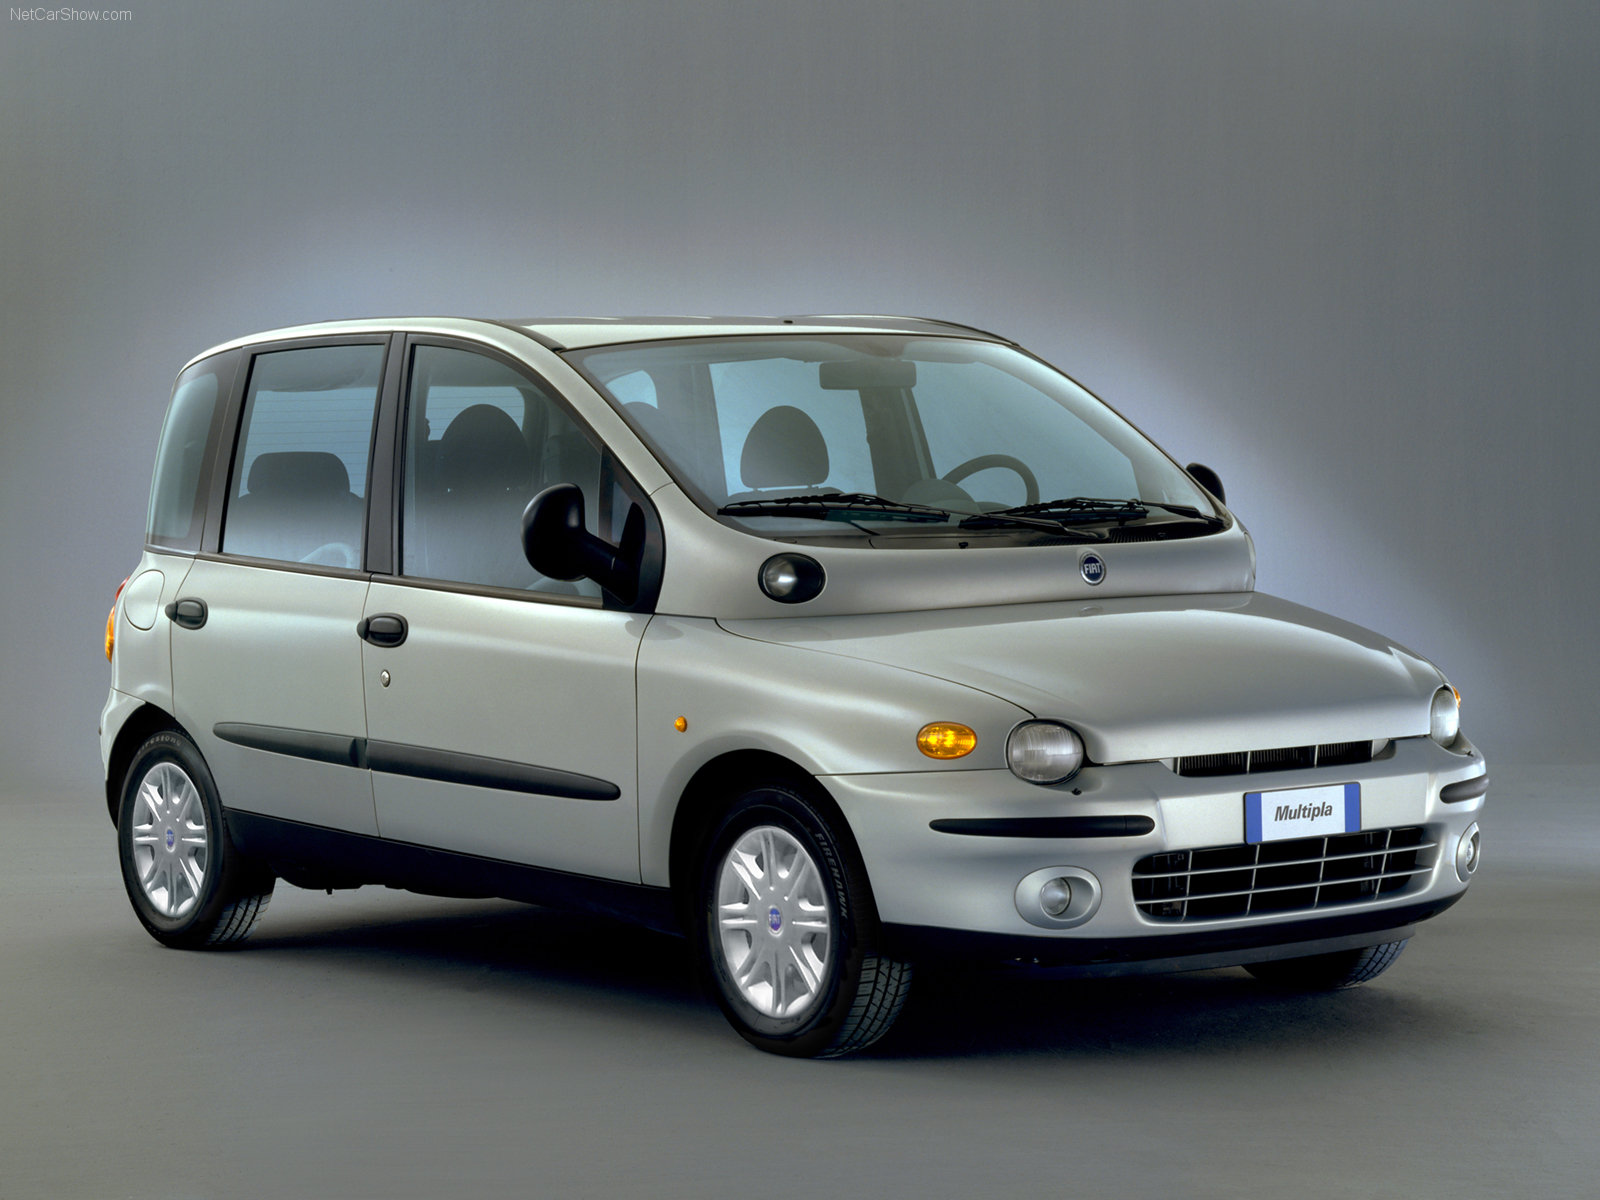 fiat multipla picture 35079 fiat photo gallery. Black Bedroom Furniture Sets. Home Design Ideas